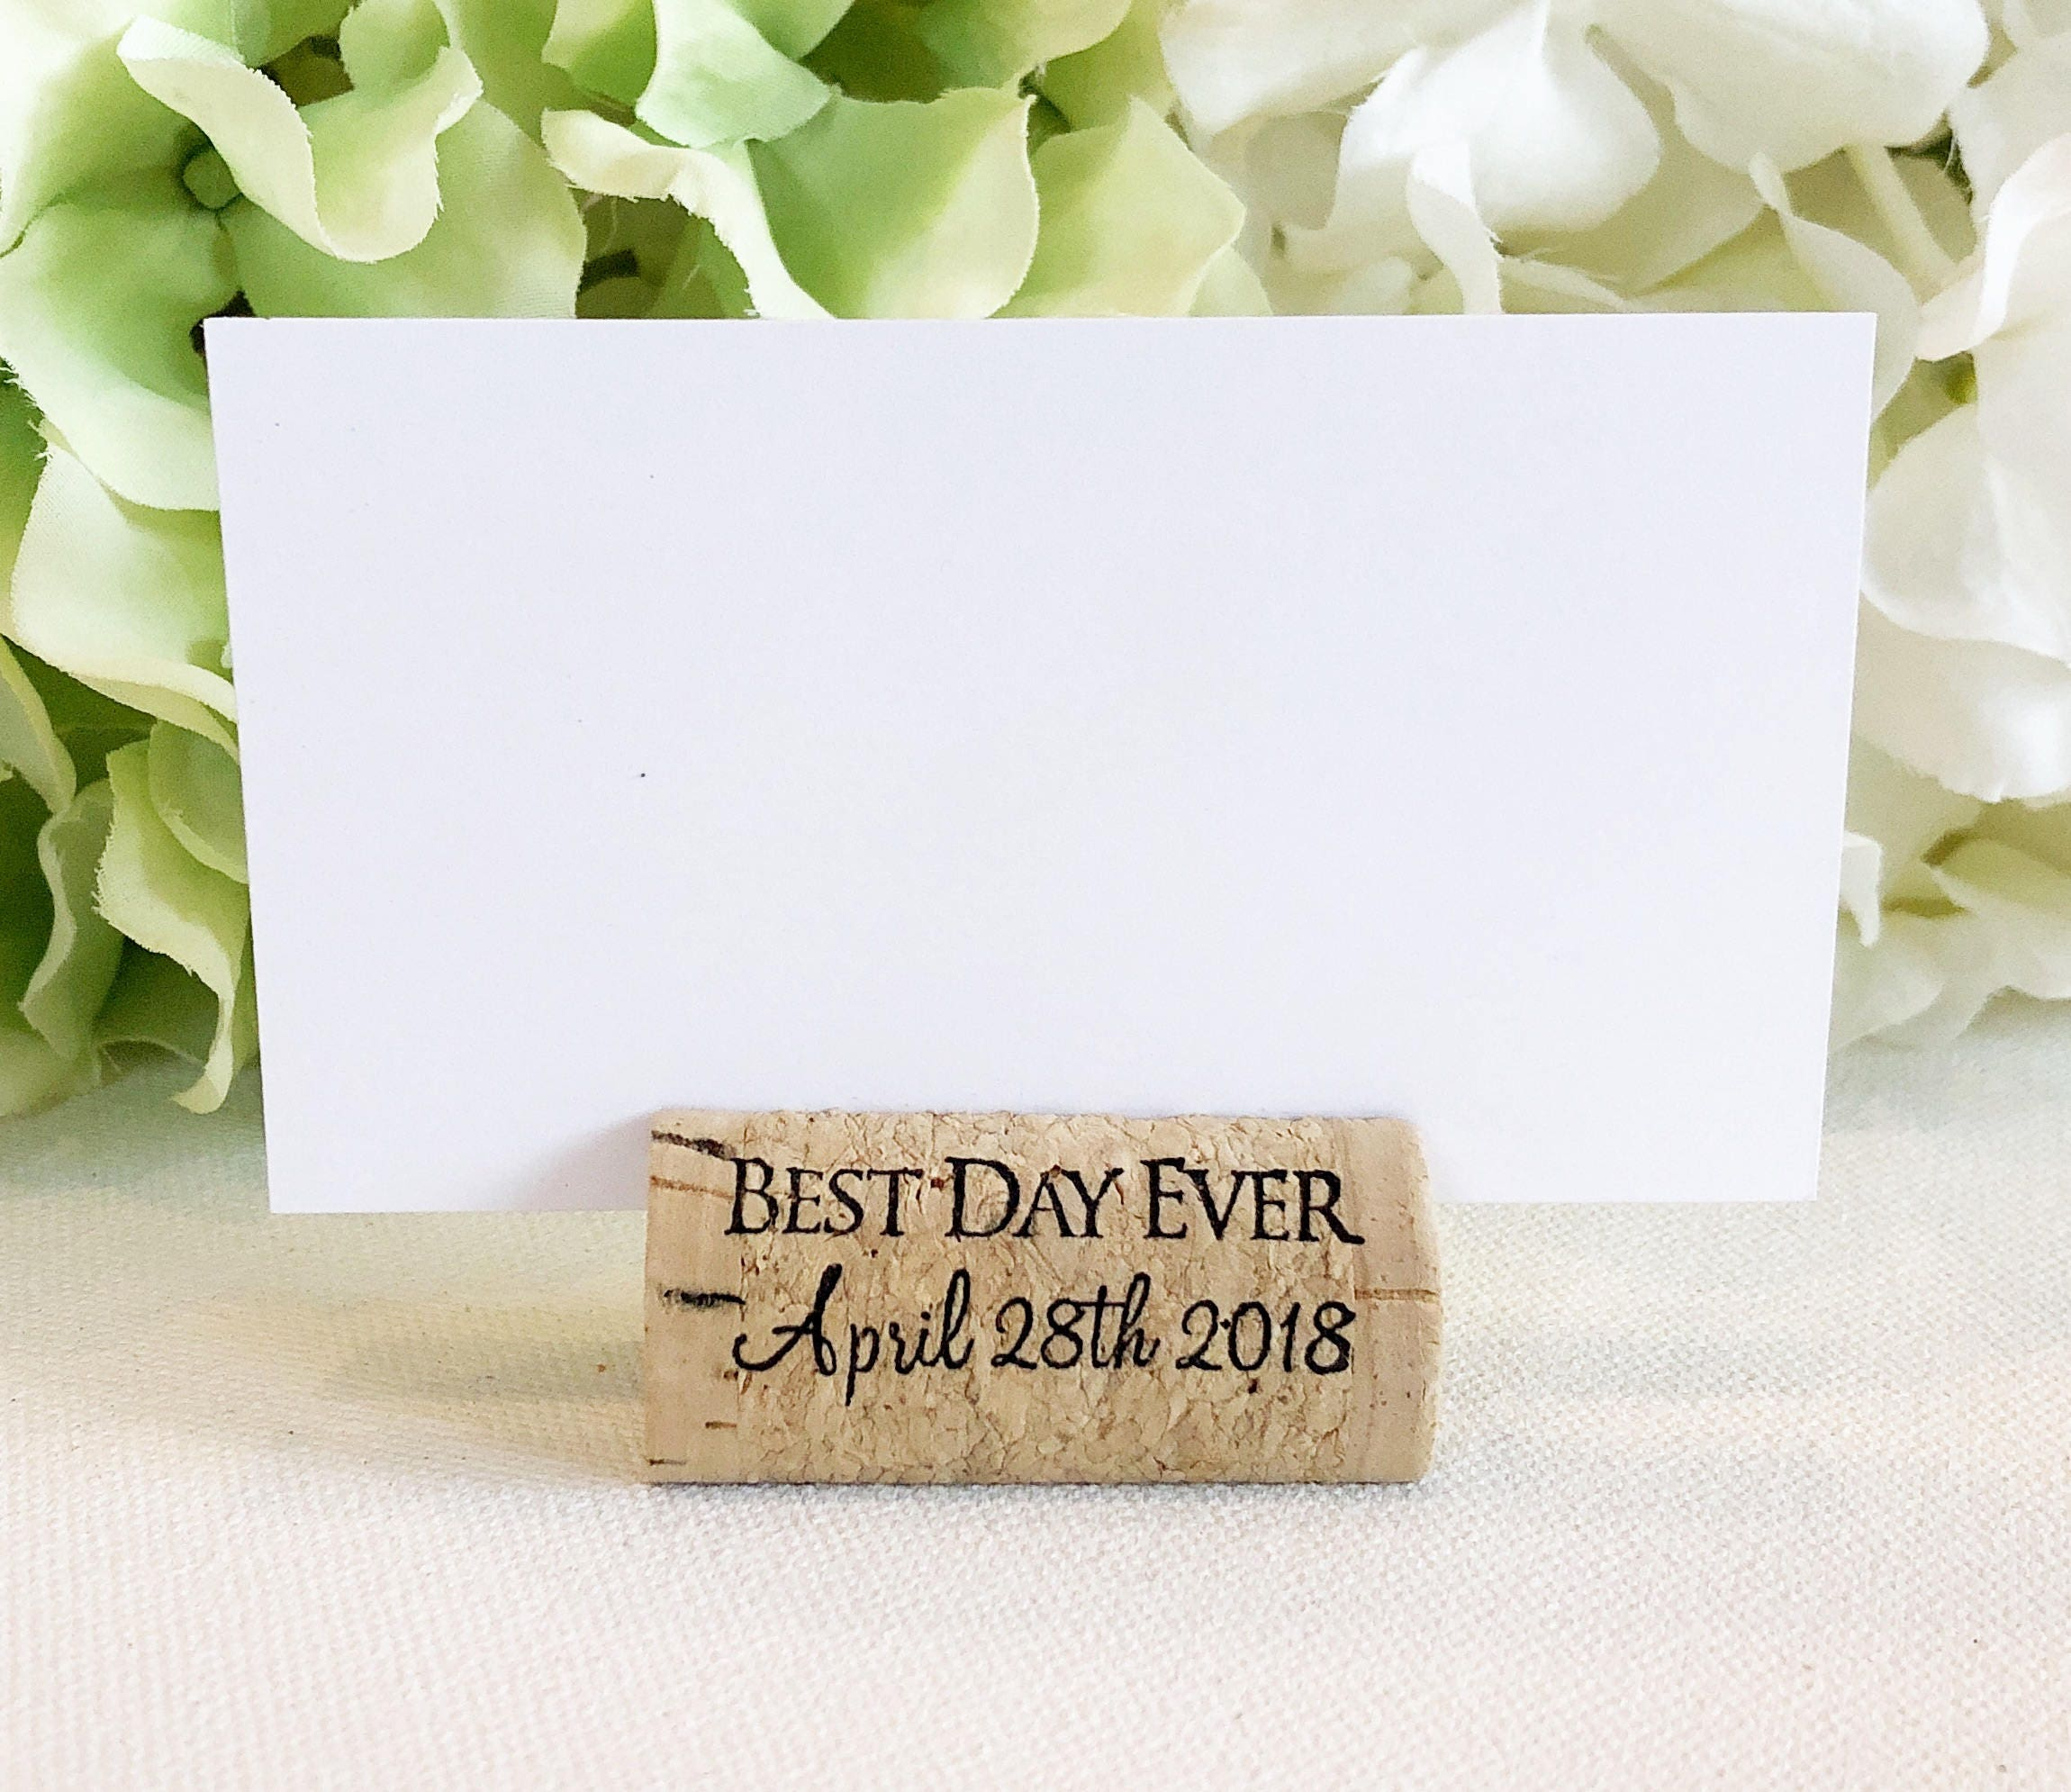 Personalized Wine Cork Place Card Holder Cork Card Holder Etsy